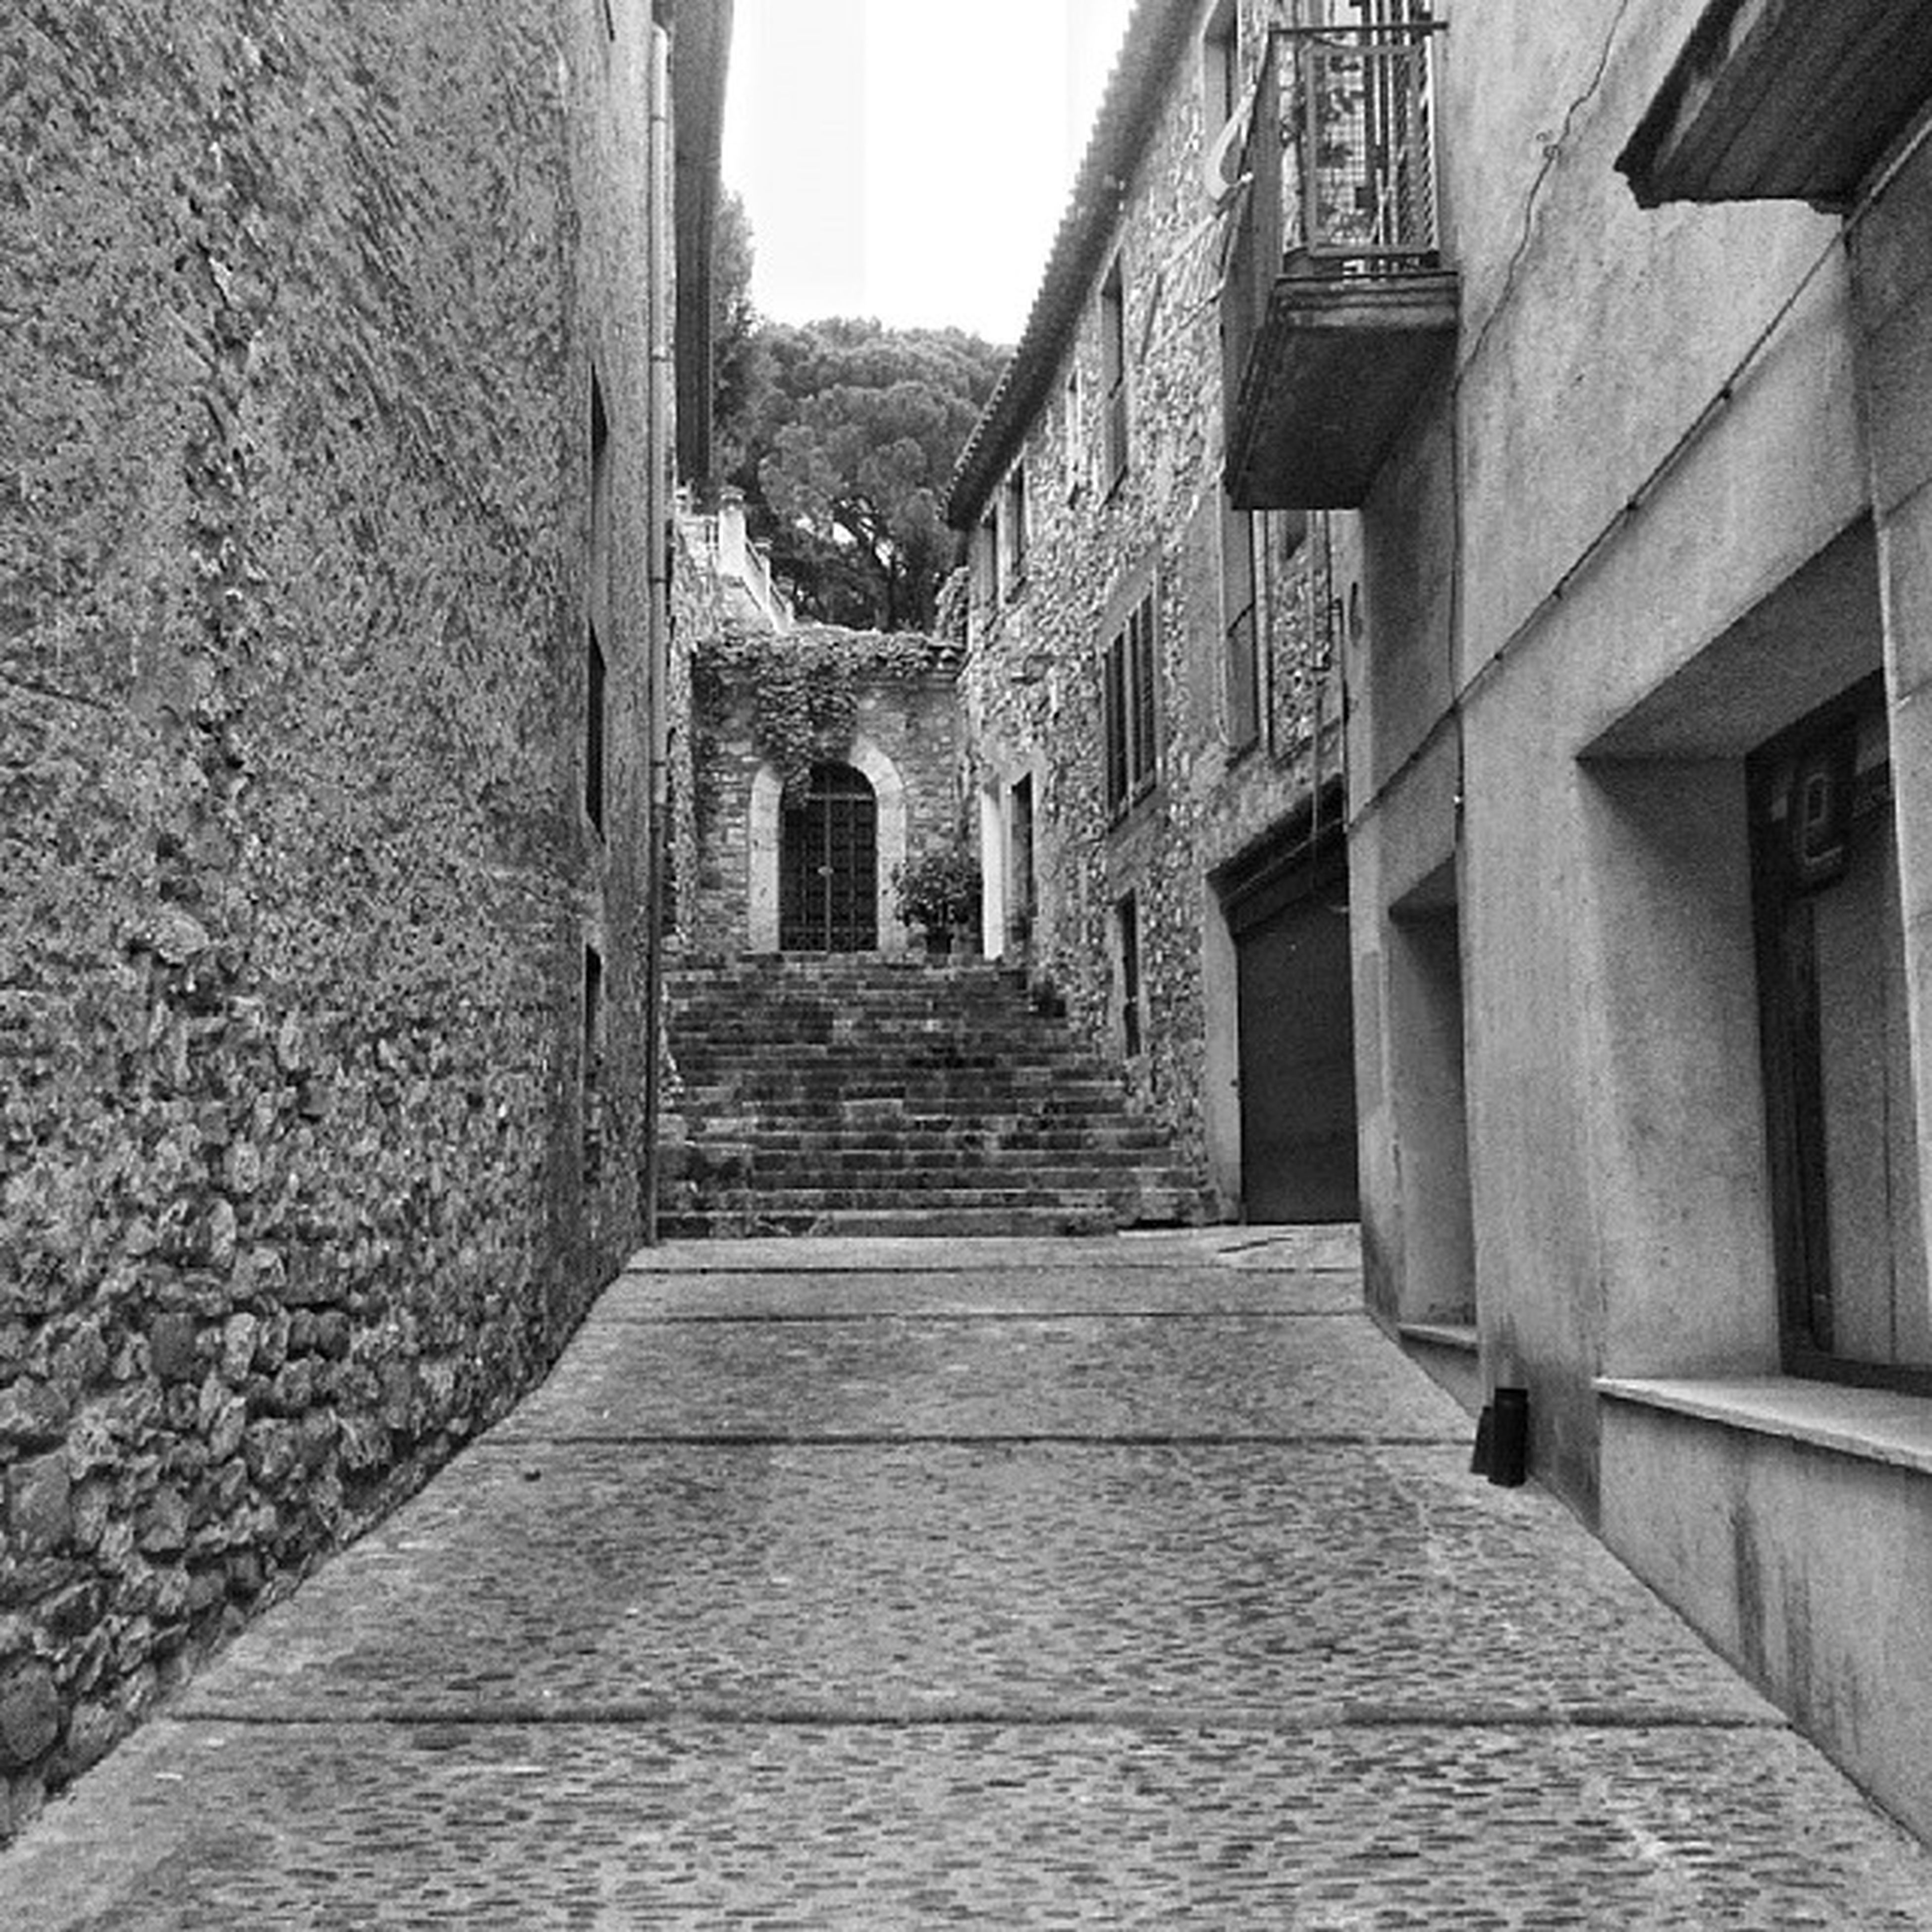 architecture, built structure, building exterior, the way forward, diminishing perspective, steps, history, building, stone wall, narrow, wall - building feature, day, vanishing point, no people, outdoors, old, walkway, steps and staircases, pathway, stone material